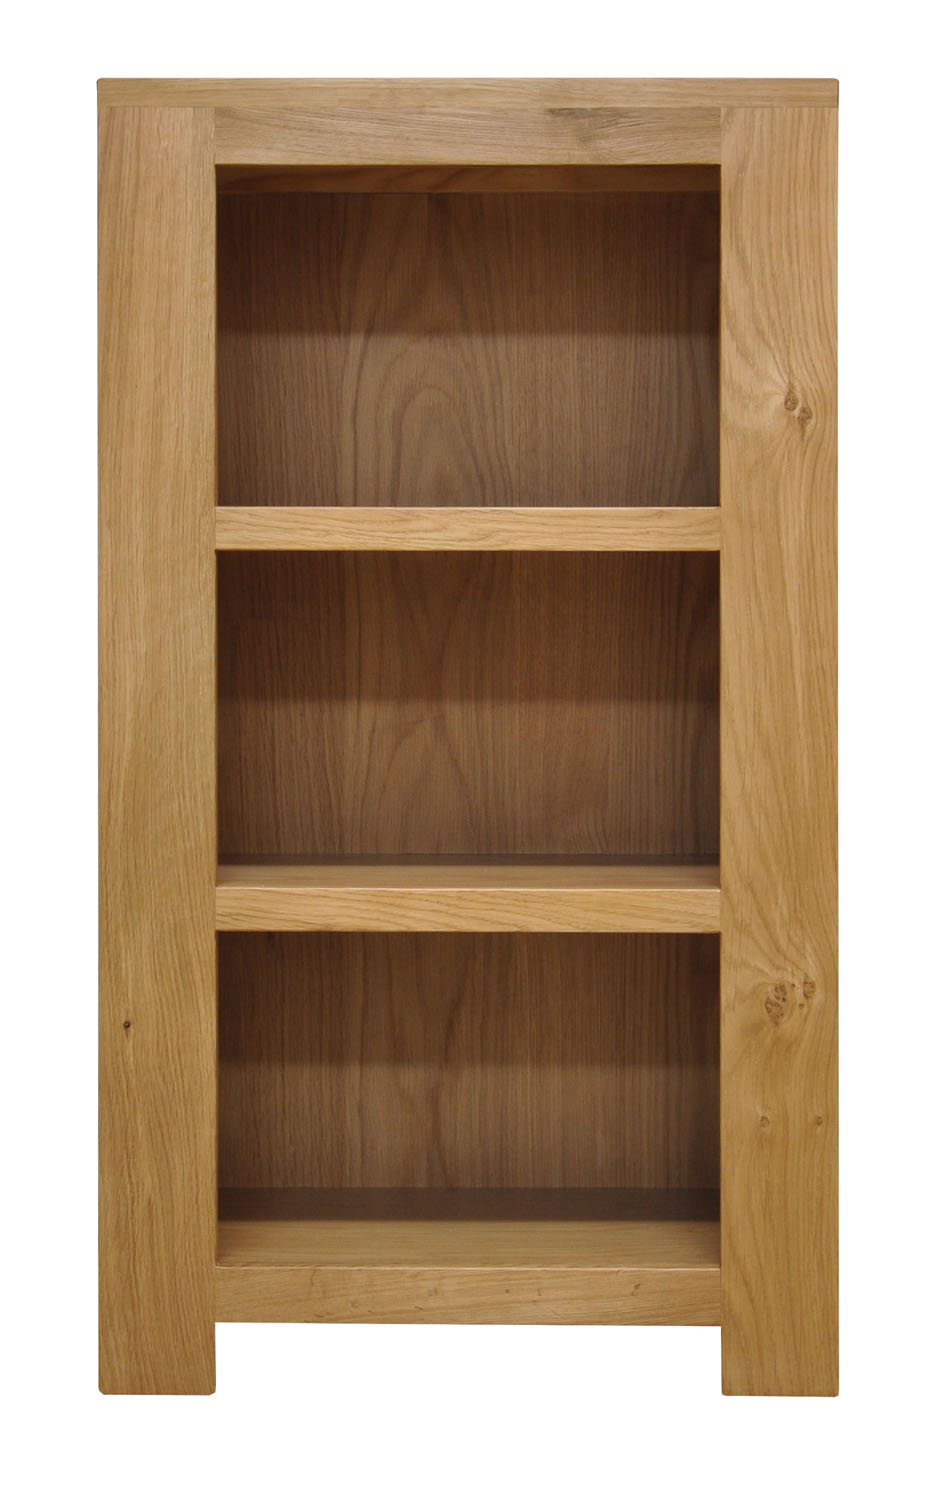 Small Oak Bookcase Narrow Storage Low Bookshelf Wooden